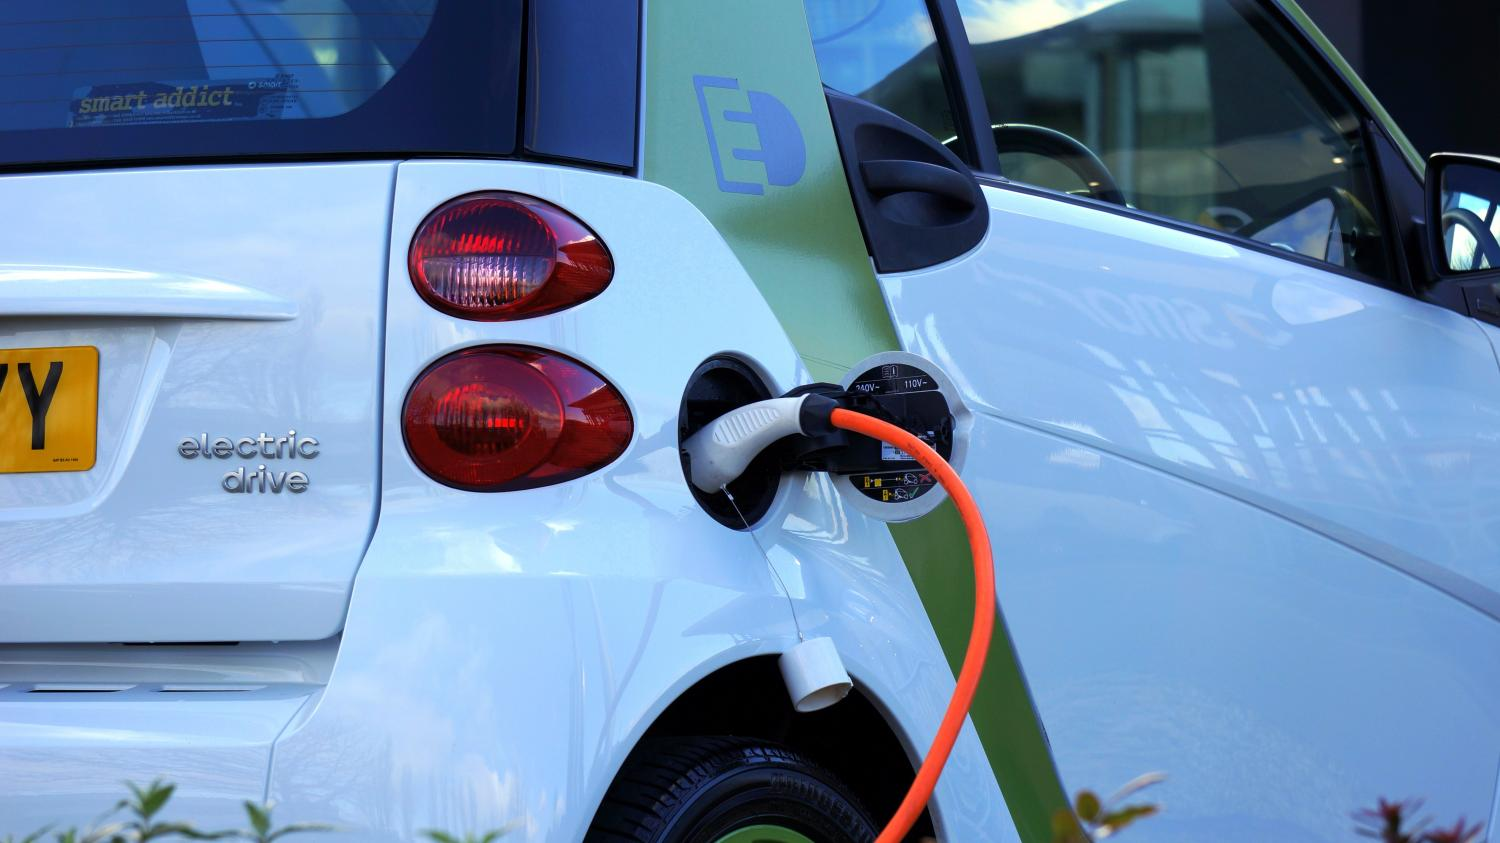 Electric cars will overtake conventional vehicles by 2040 and will create a $2 trillion e-mobility opportunity for utility companies, according to research released today by Accenture.